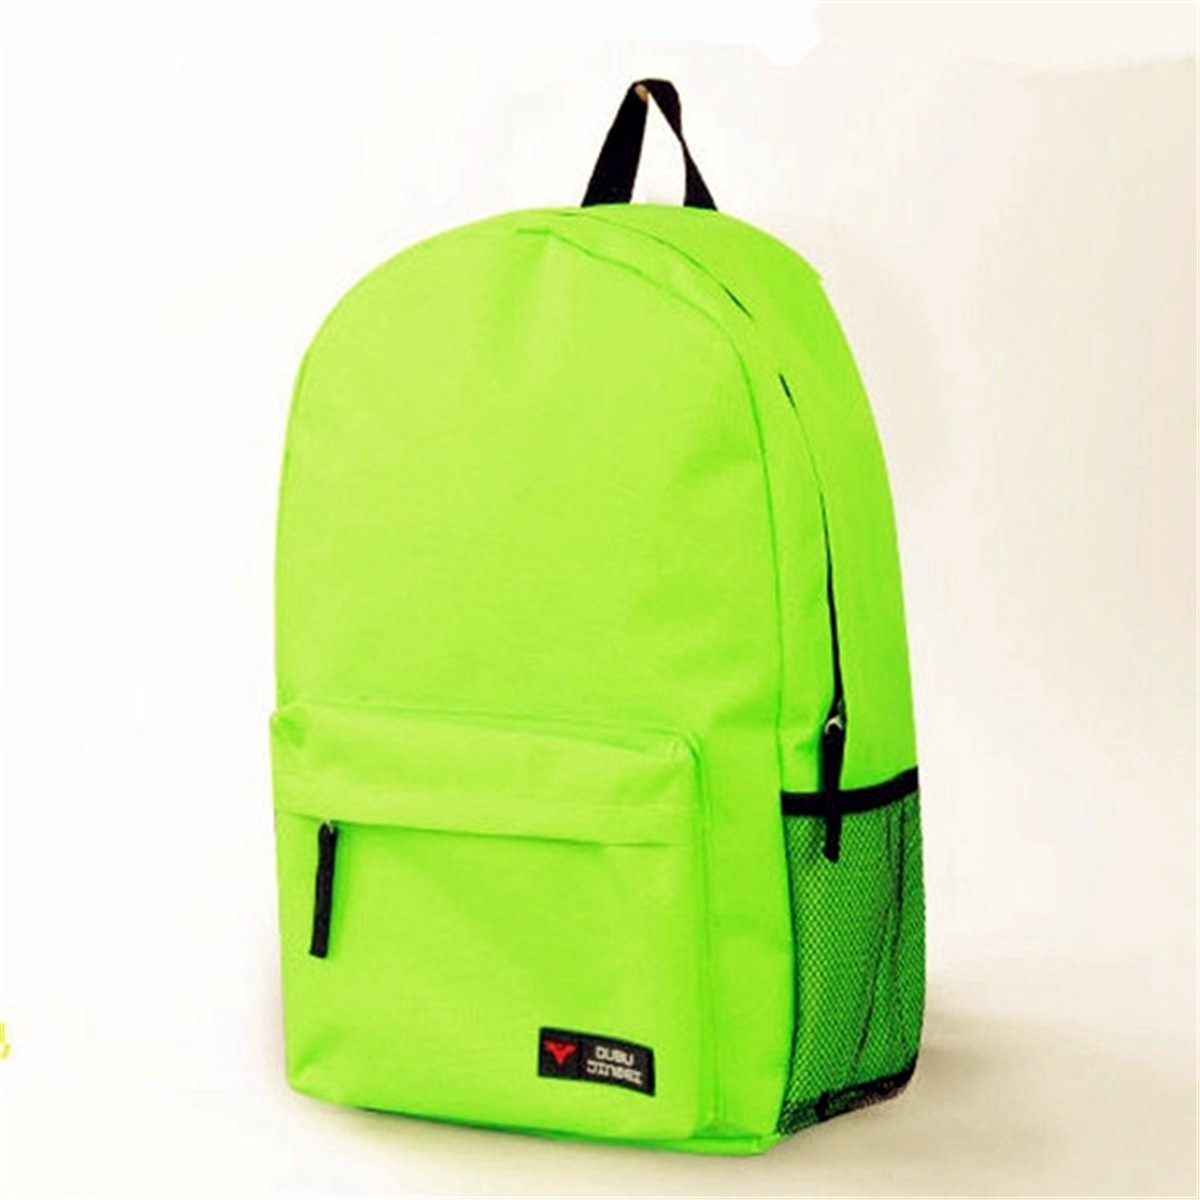 753139412783 Plain Yellow Backpack- Fenix Toulouse Handball